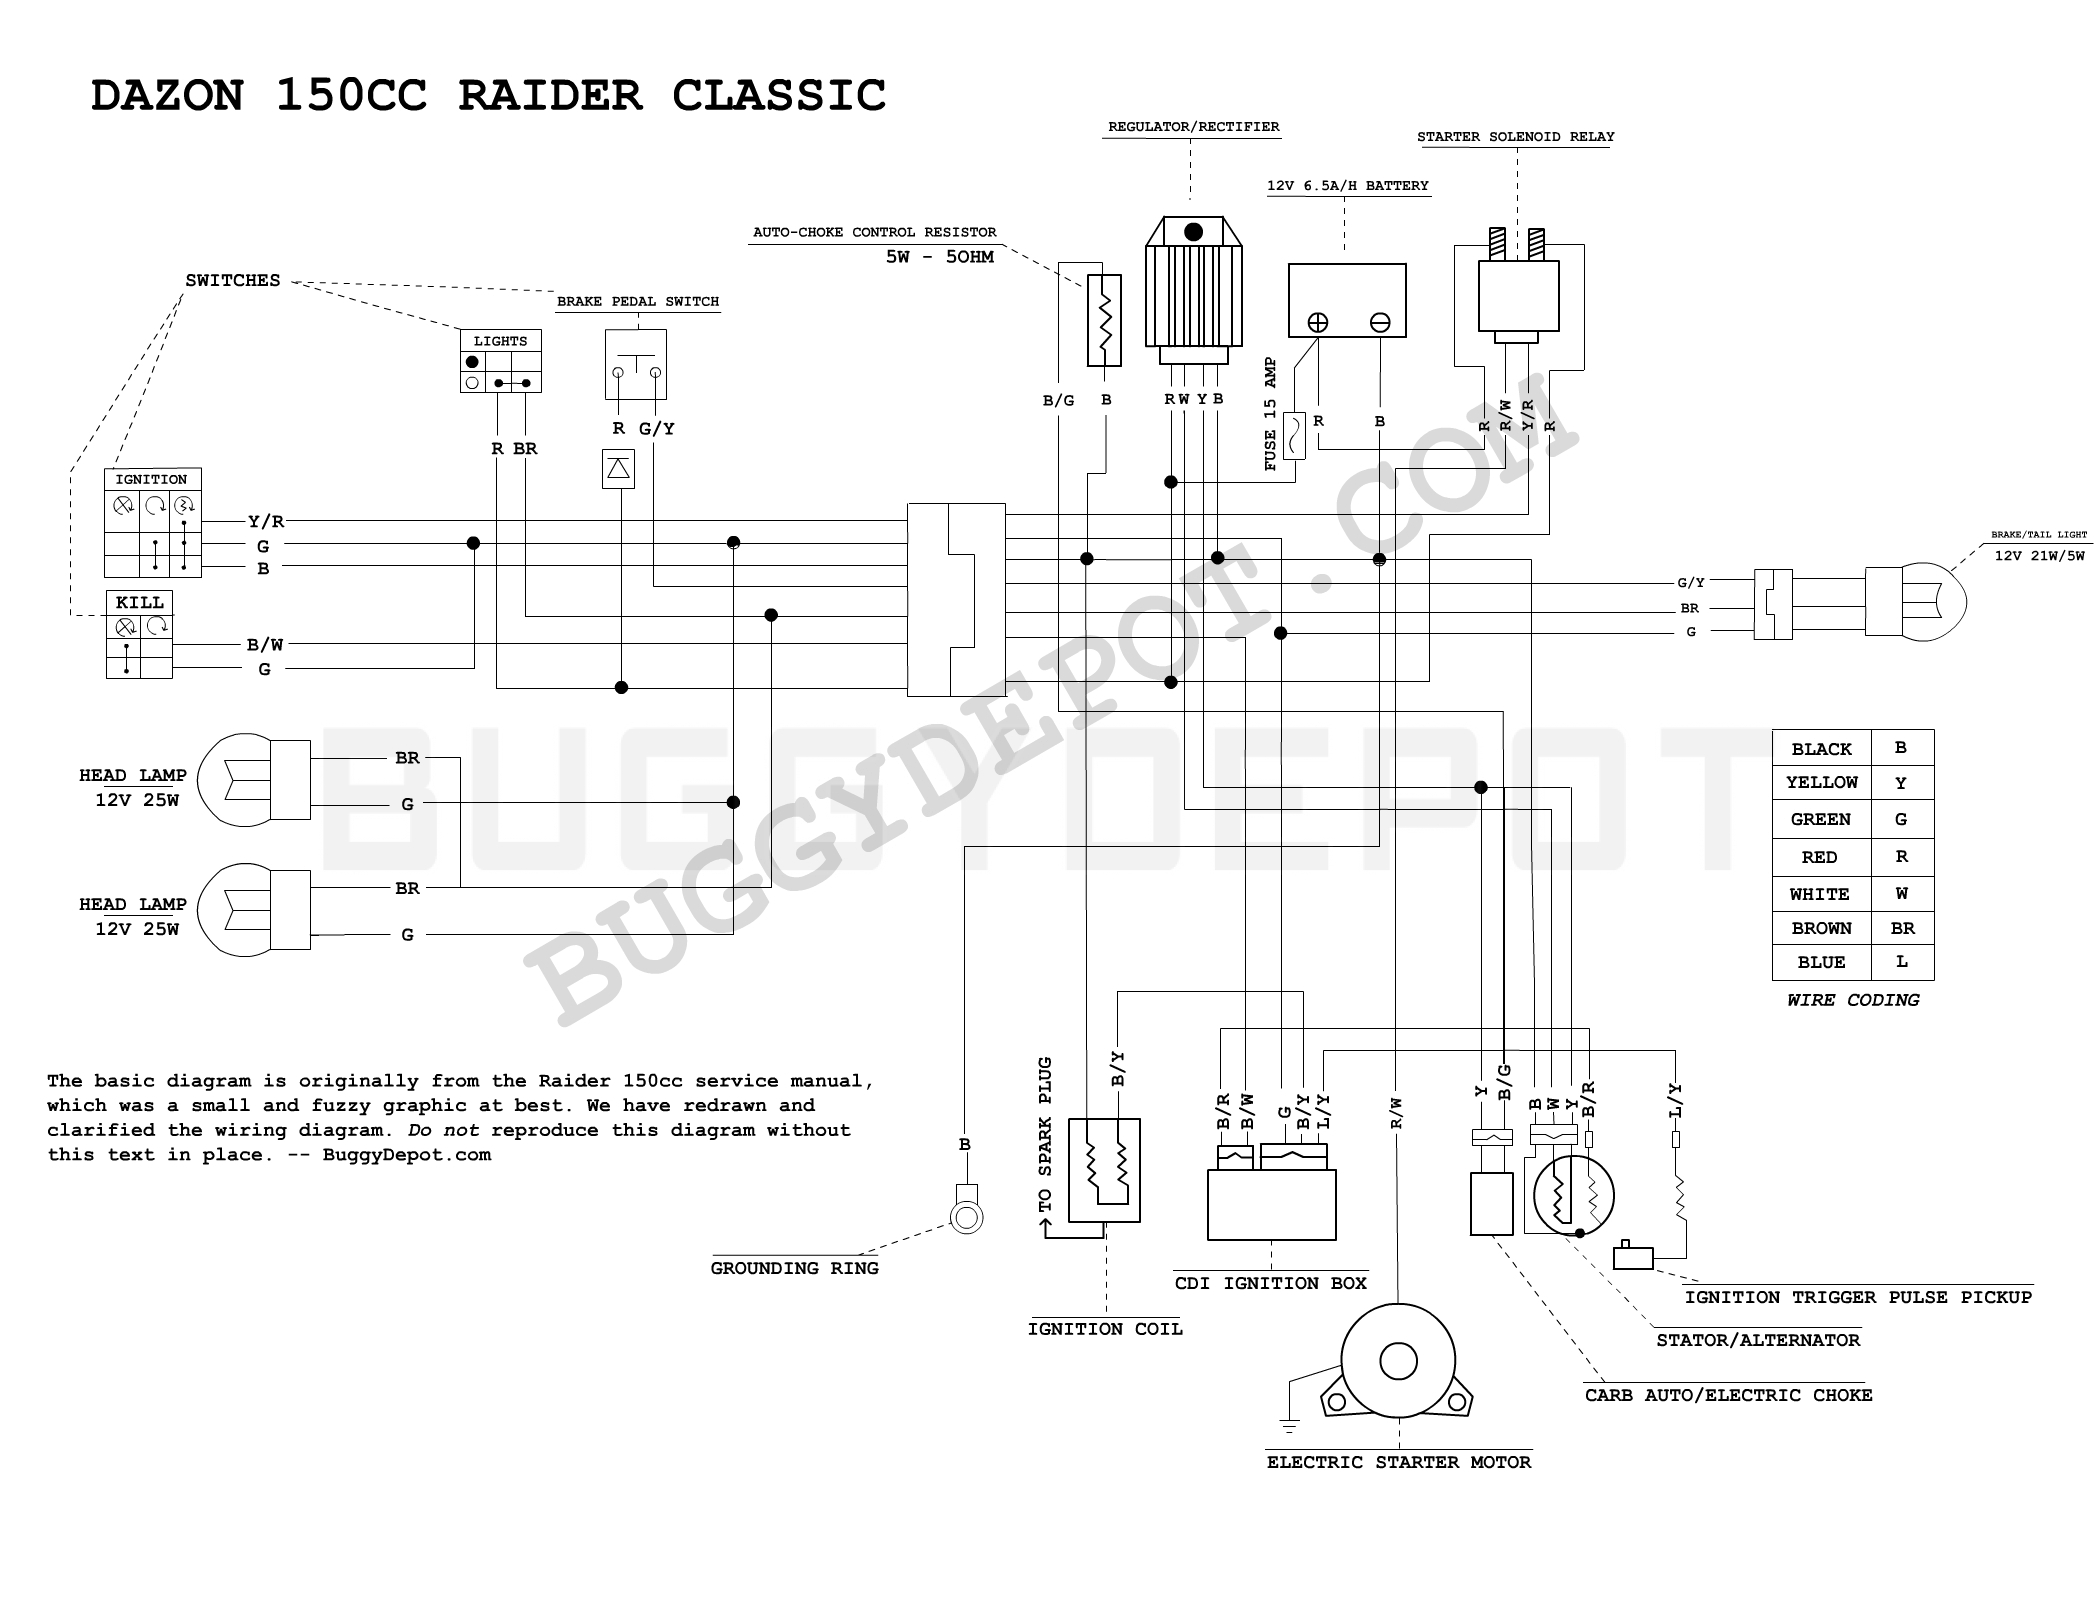 Dazon Raider Classic - Wiring Diagram - Buggy Depot Technical Center | Gy6 150cc Buggy Wiring Diagram |  | Buggy Depot